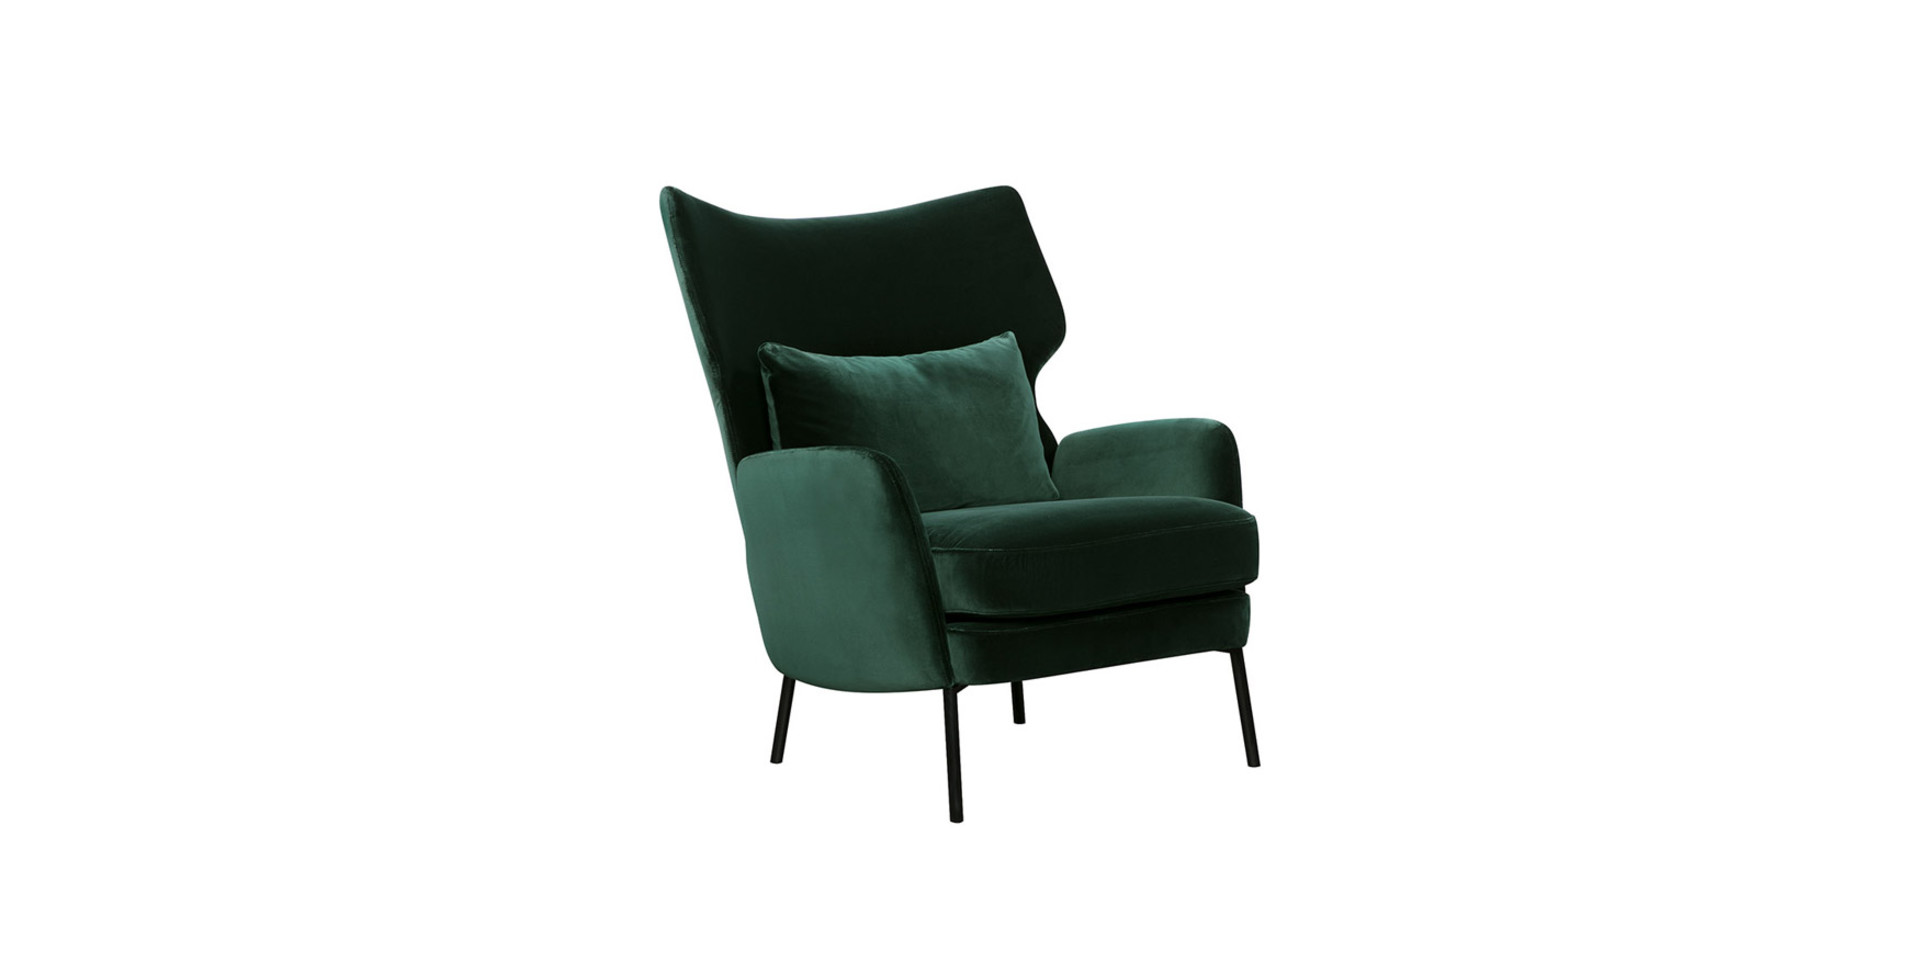 ALEX_armchair_lario1402_dark_green_black_legs_2